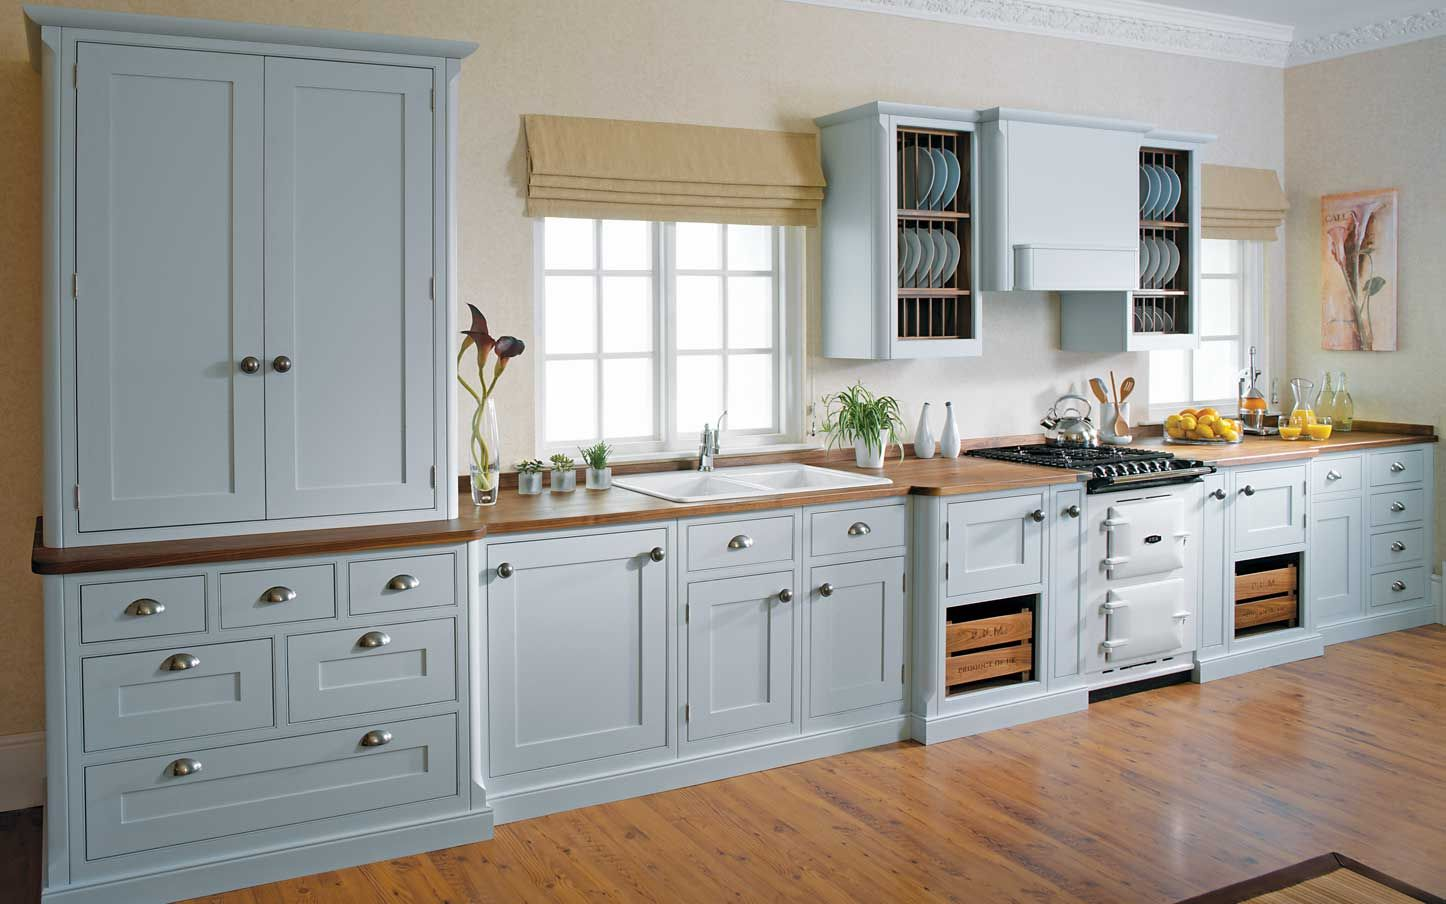 Pale Blue Cleveland InFrame traditional kitchen